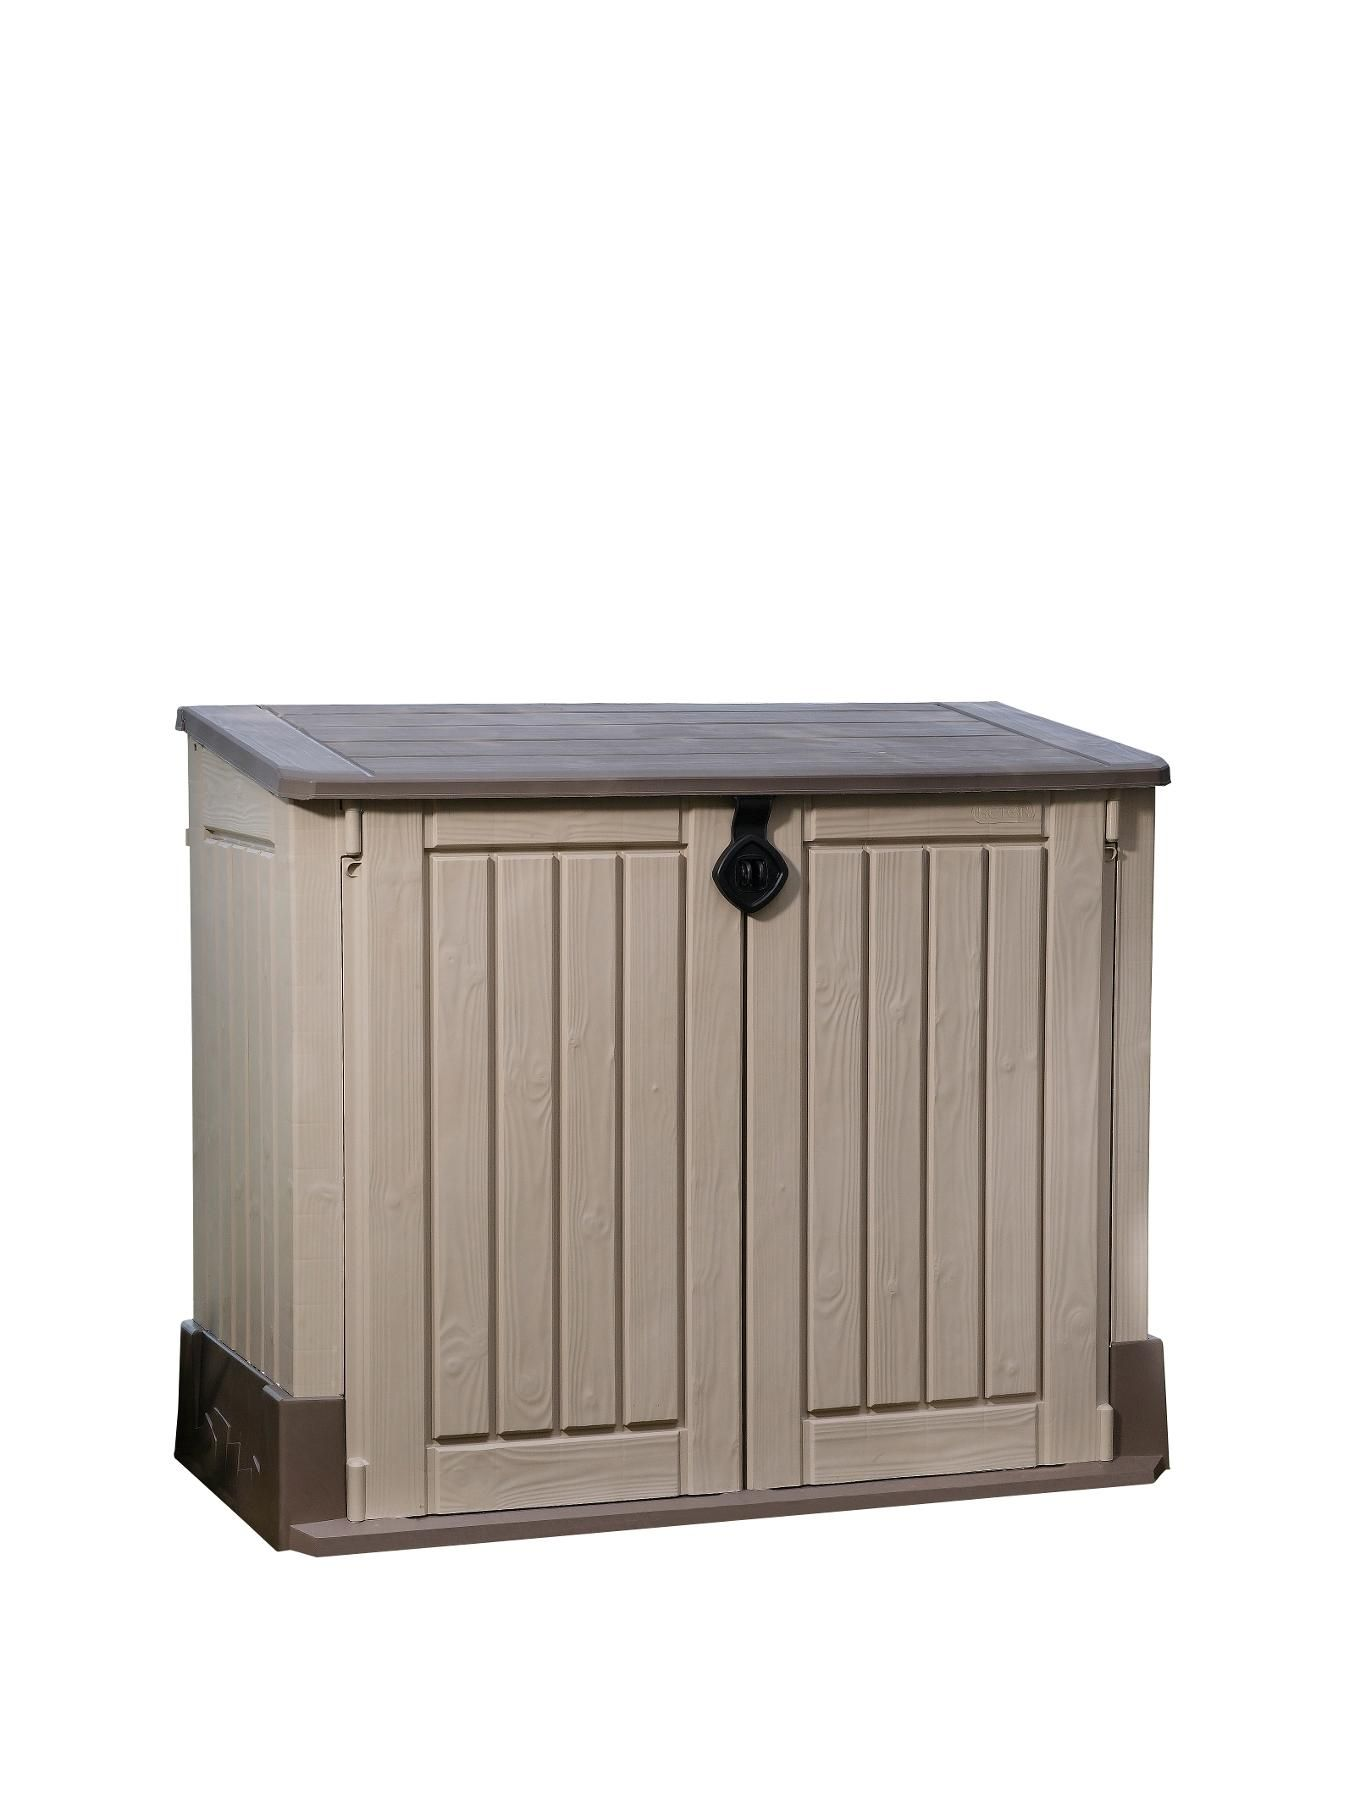 Woodland 30 Shed Wooden Storage Sheds Outdoor Garden Storage Wood Storage Sheds